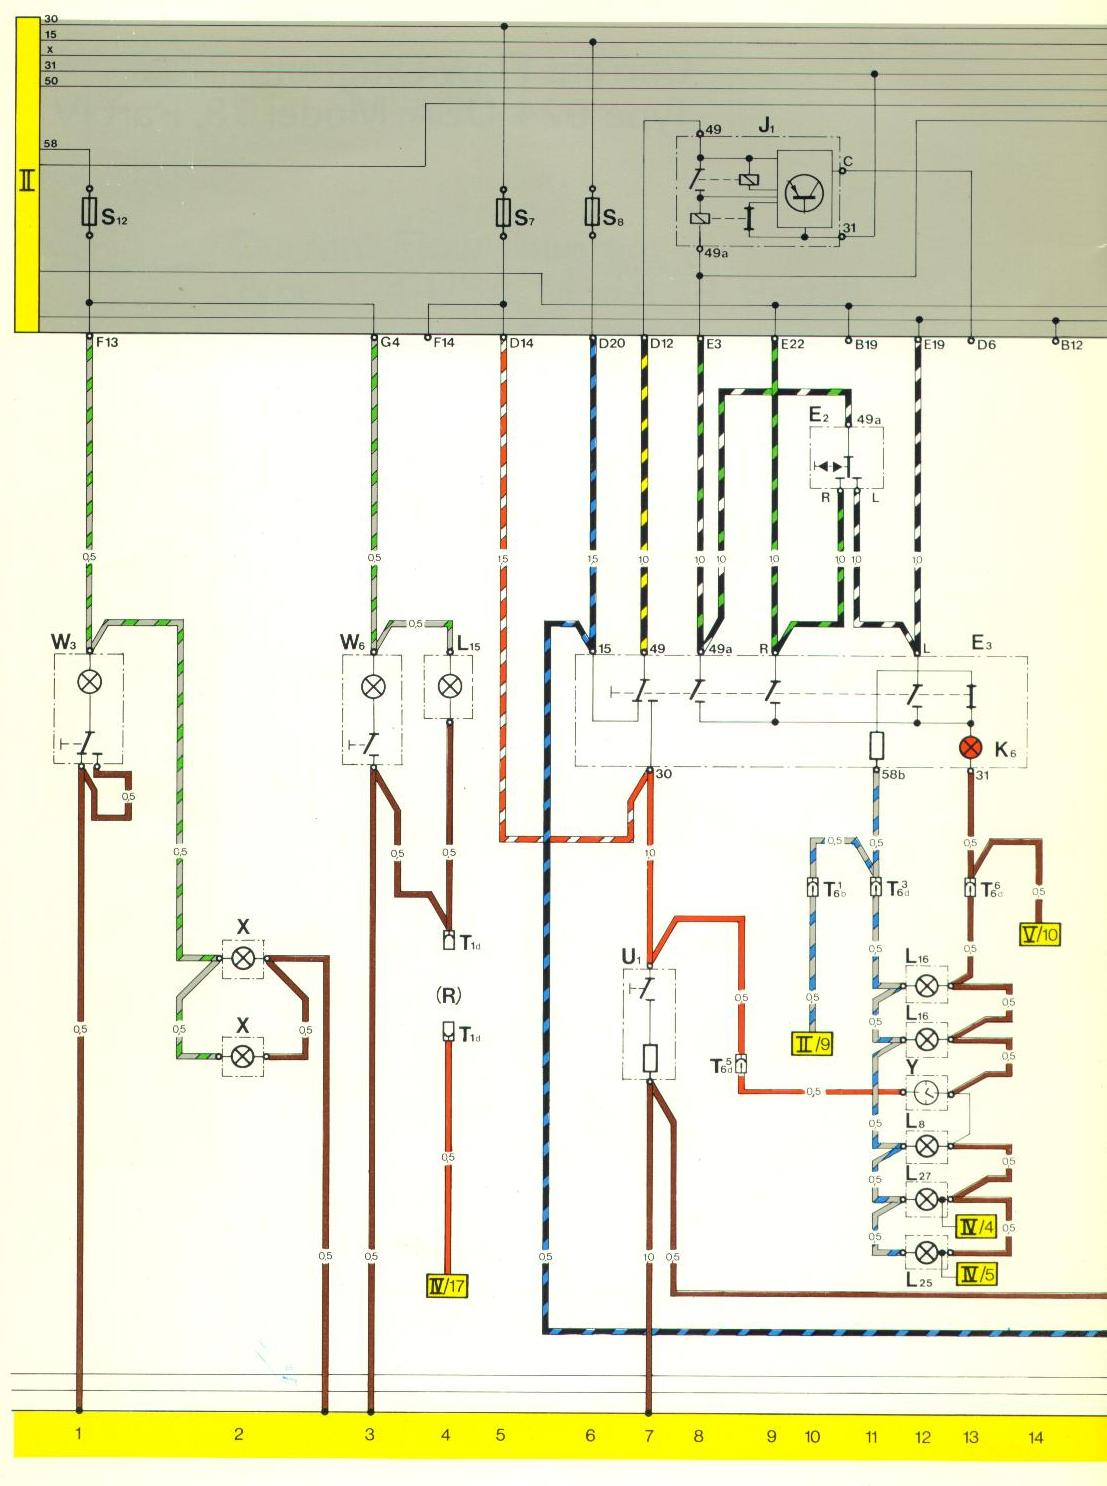 Porsche 944 Power Window Wiring Diagram Just Another Of 1987 911 Engine Pelican Parts 924 Electrical Diagrams Rh Pelicanparts Com 1986 Compartment